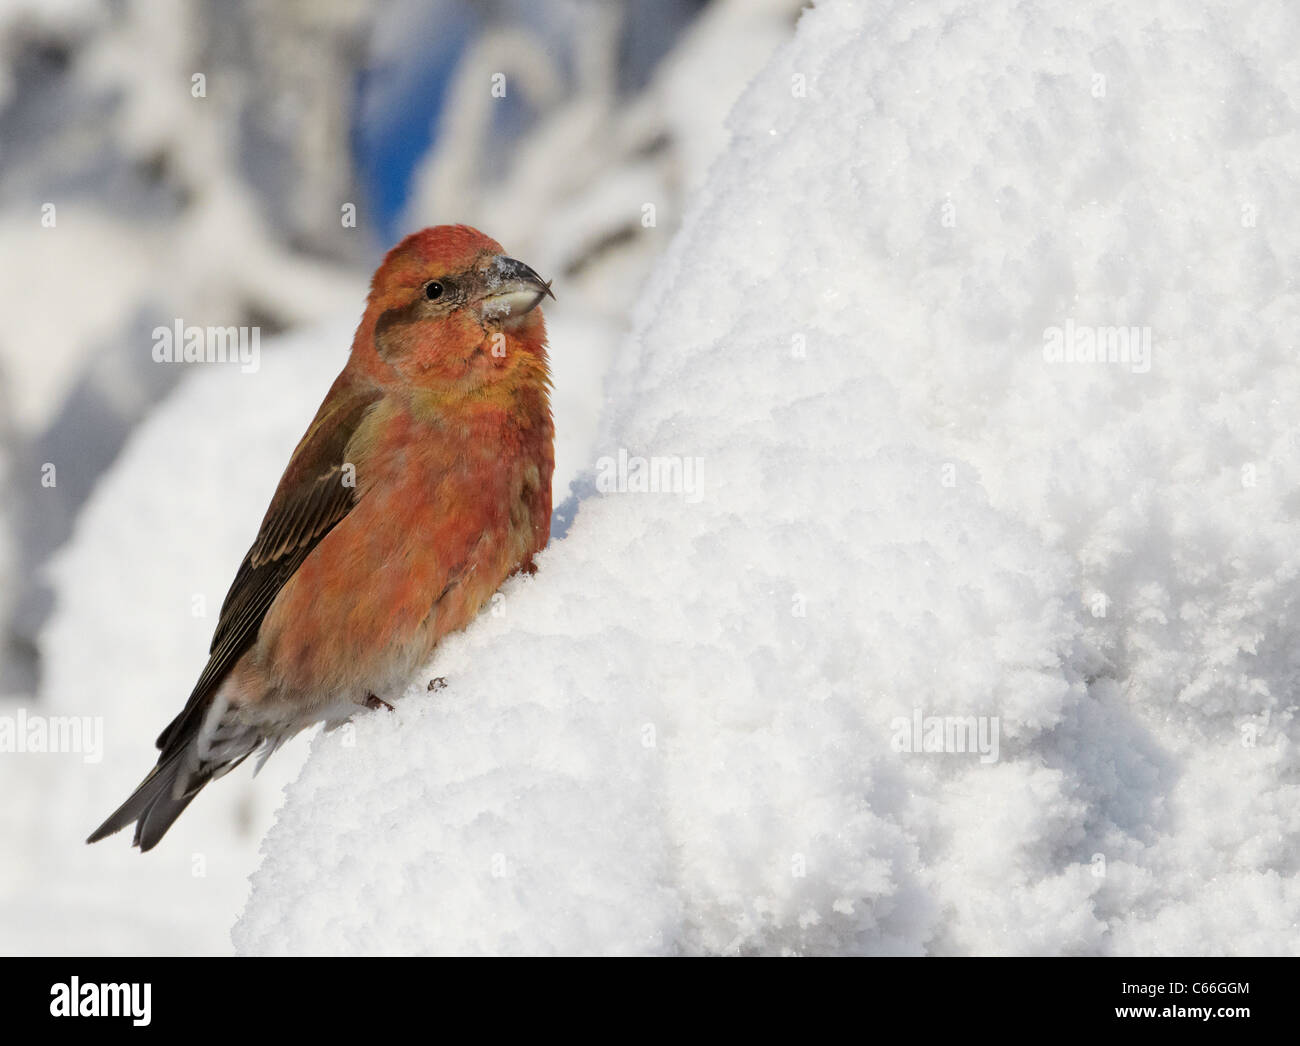 Common Crossbill, Red Crossbill (Loxia curvirostra). Male perched in a snowy spruce. - Stock Image